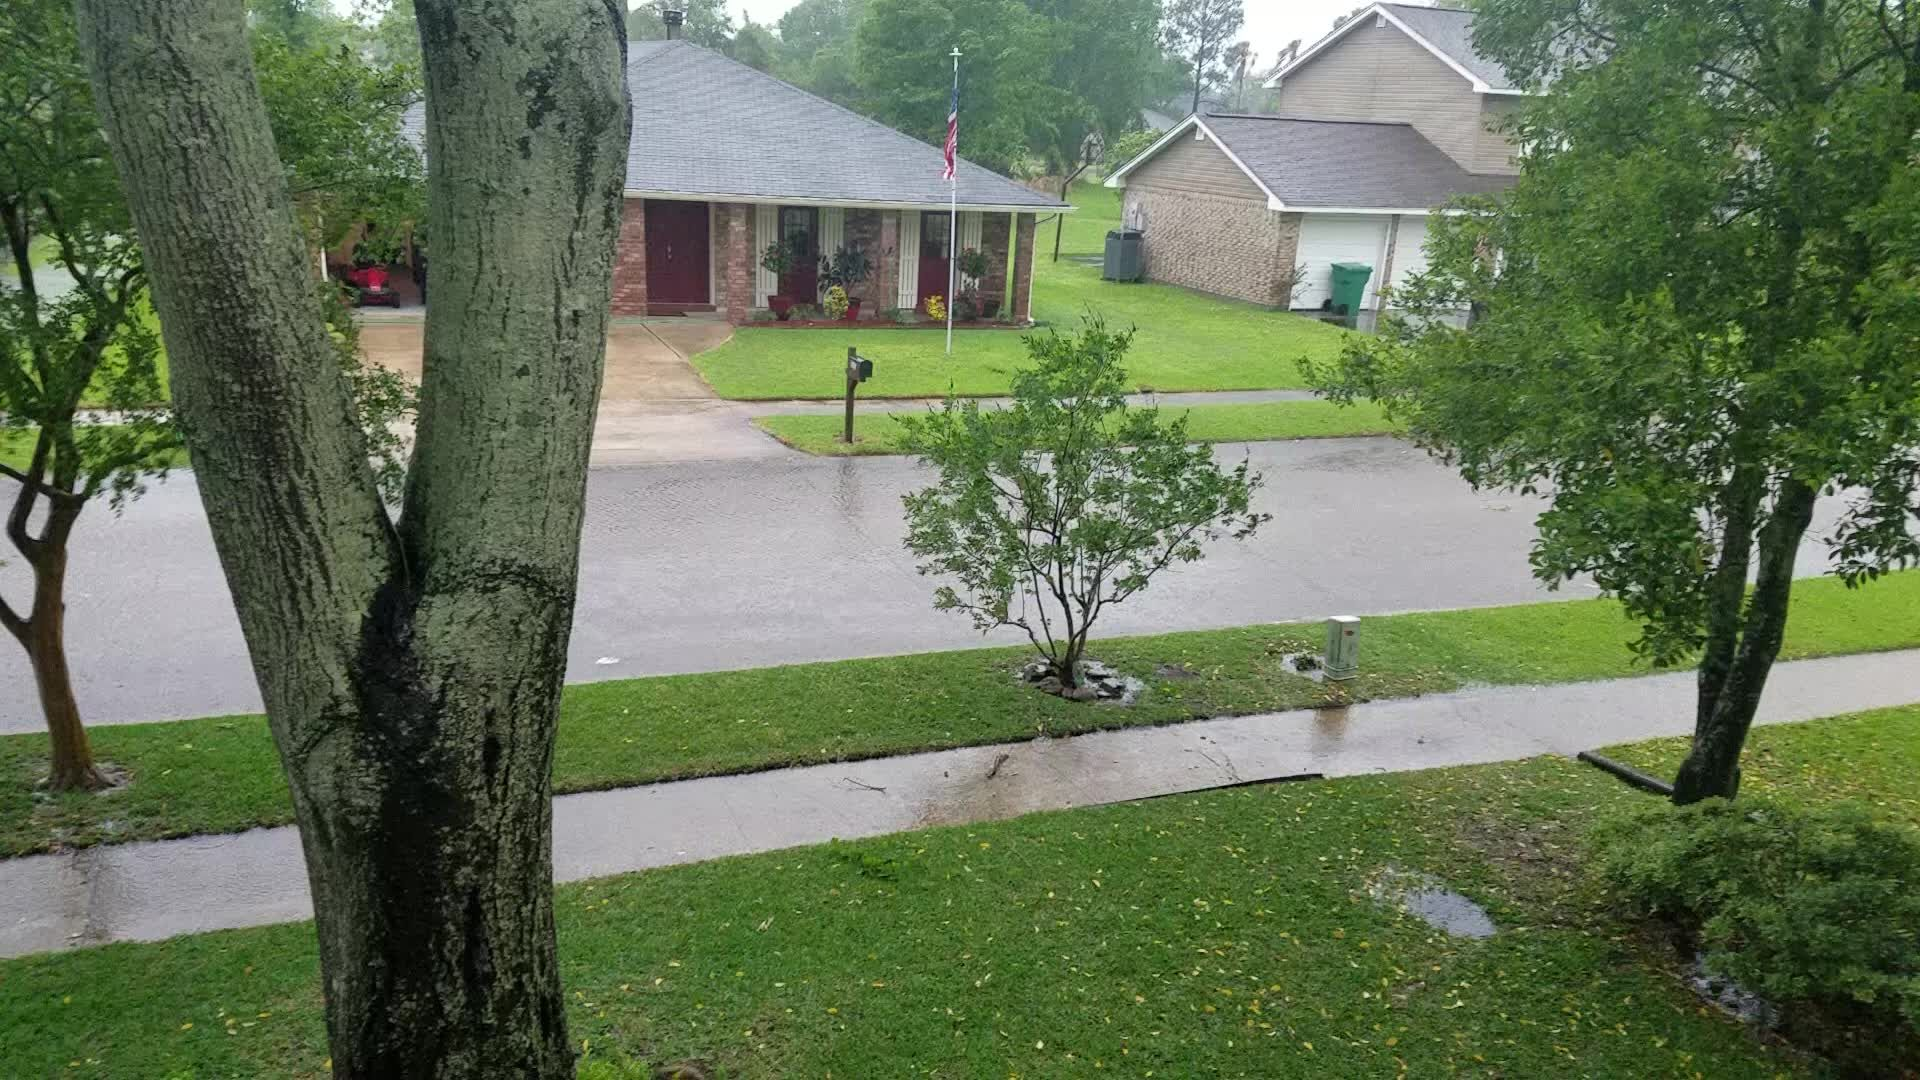 VIDEO: Street flooding reported in Laplace